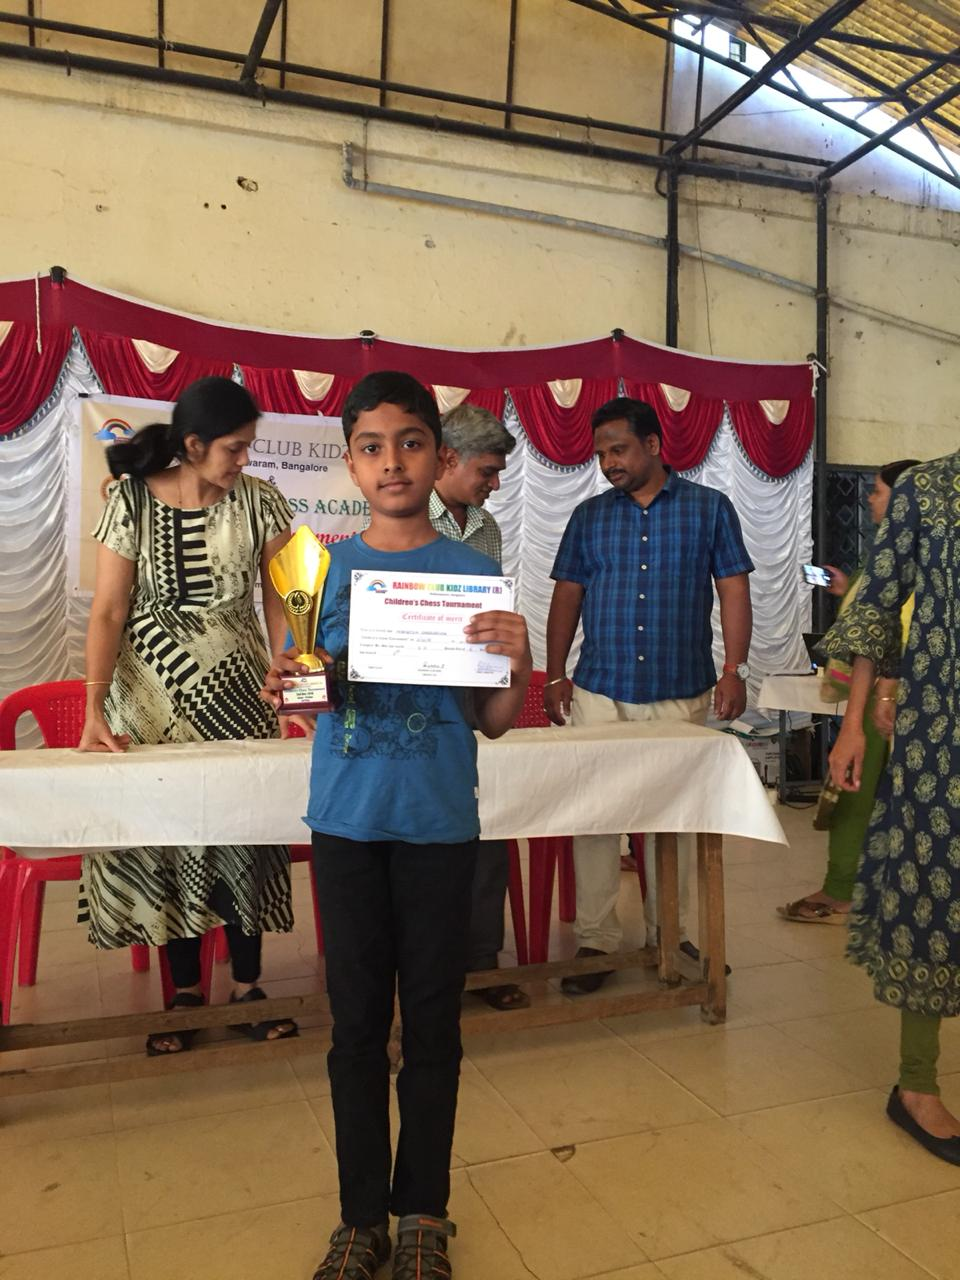 Congratulations to Mohnish for securing 1st place in the U10 Category of the Rainbow kidz Chess Tournament 2018 held on Dec 2nd, 2018